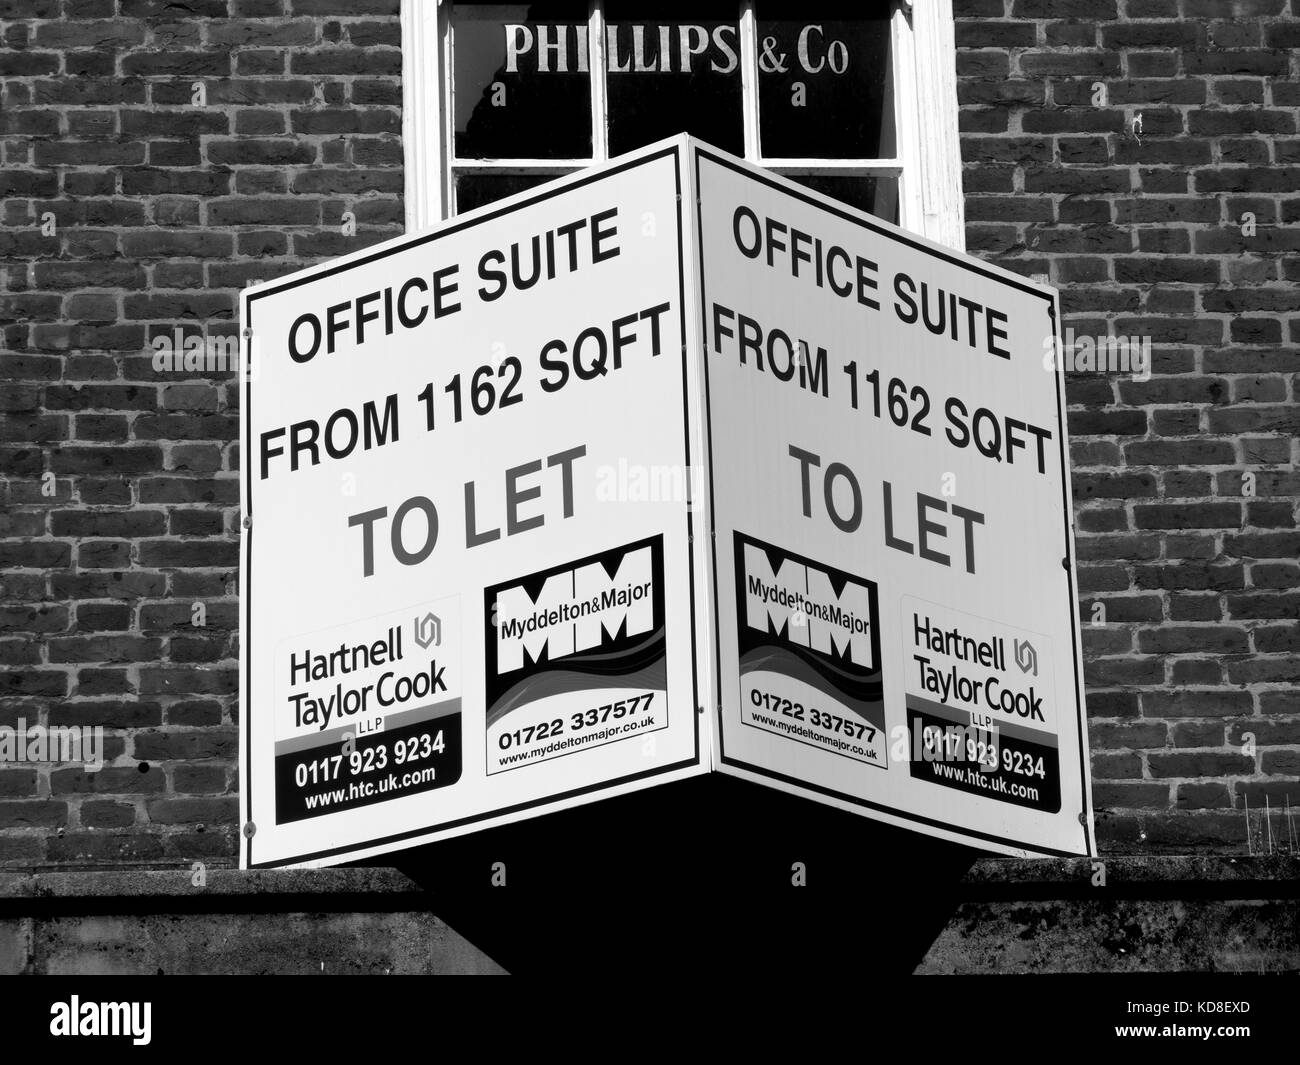 Estate agents office to let advertisement sign over vacant premises - Stock Image